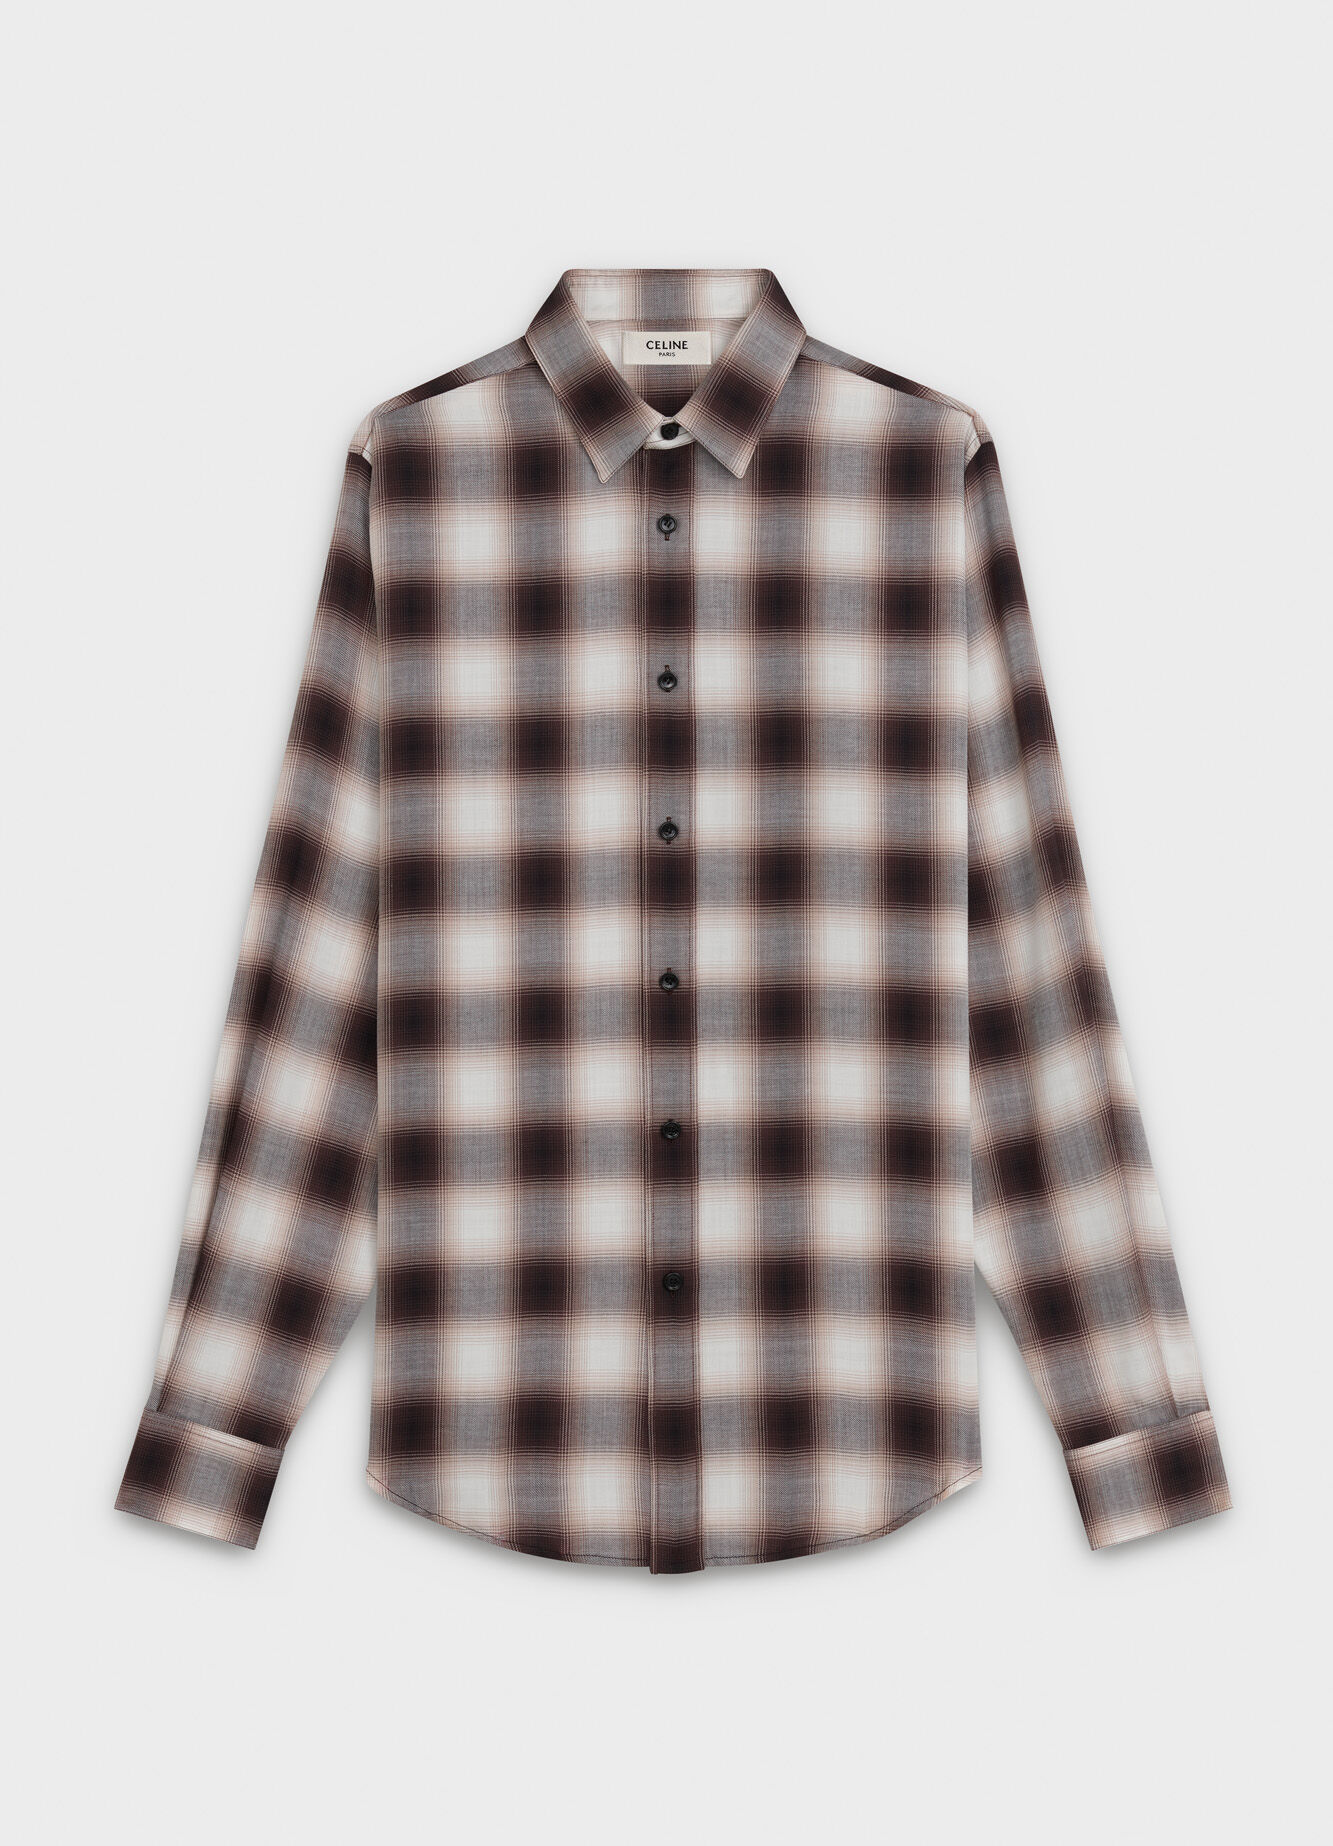 CLASSIC SHIRT IN CHECKERED VISCOSE WITH MODERN COLLAR